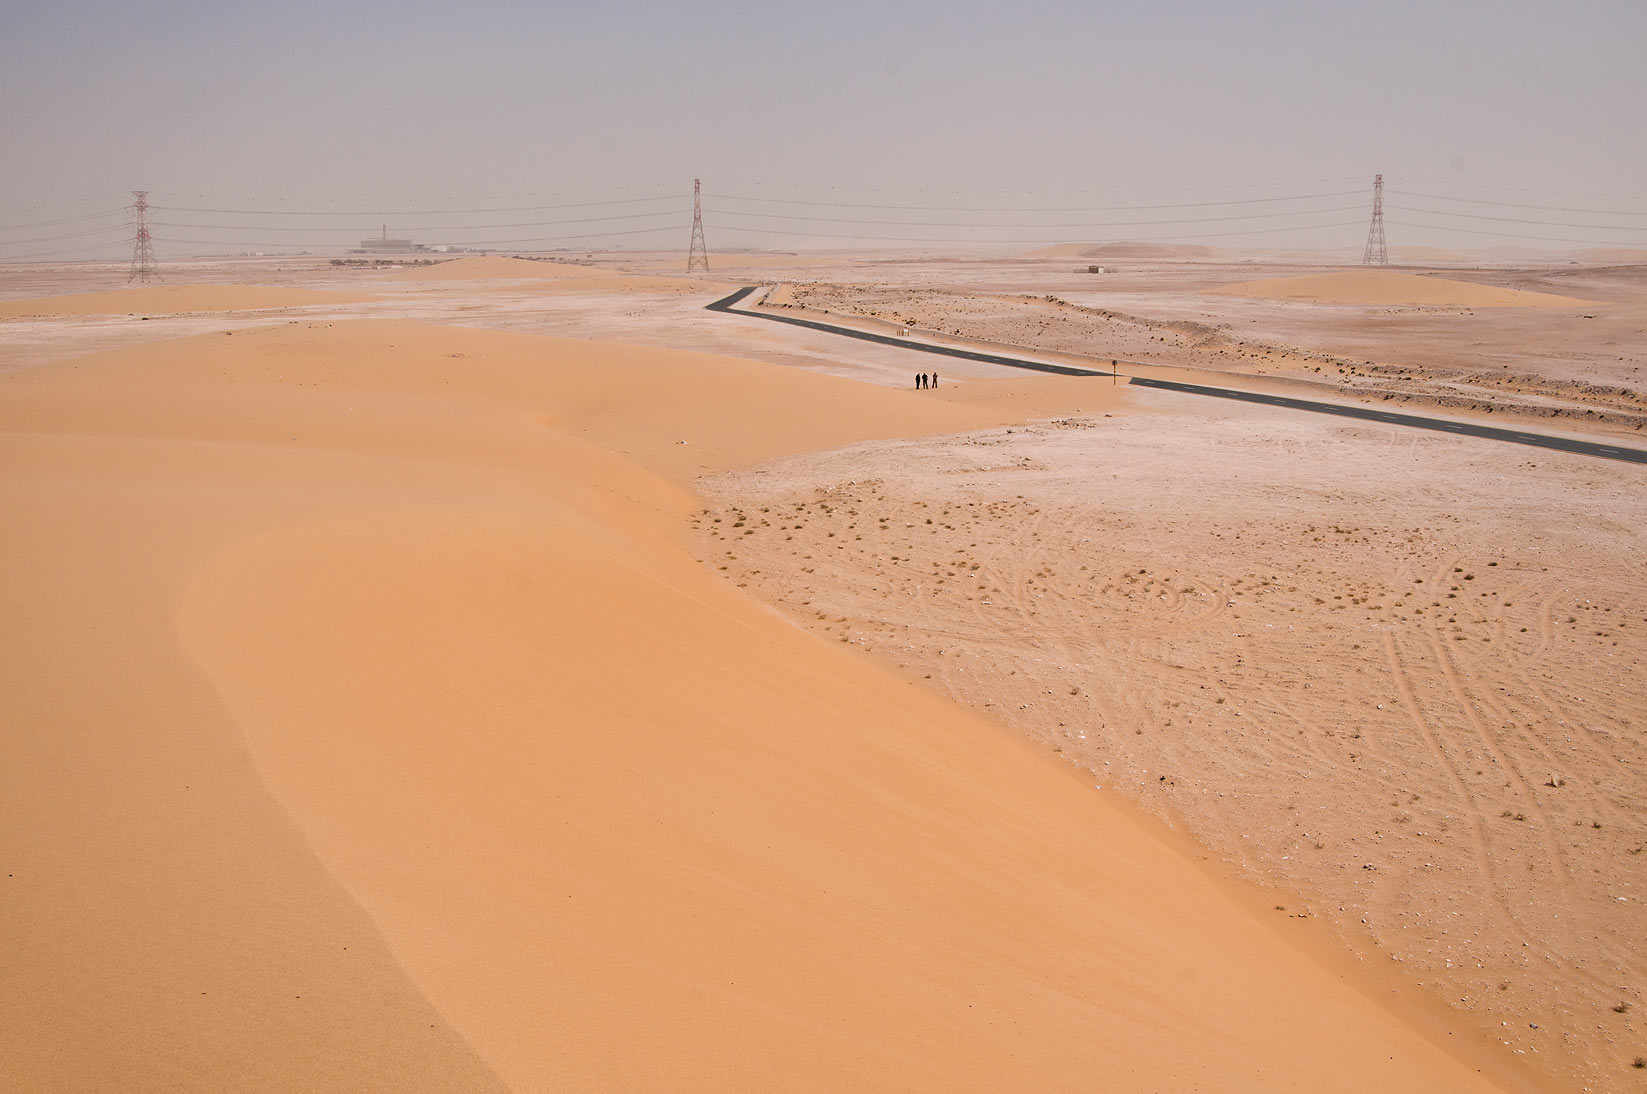 Southern side of Singing Sand Dunes near Mesaieed. Qatar